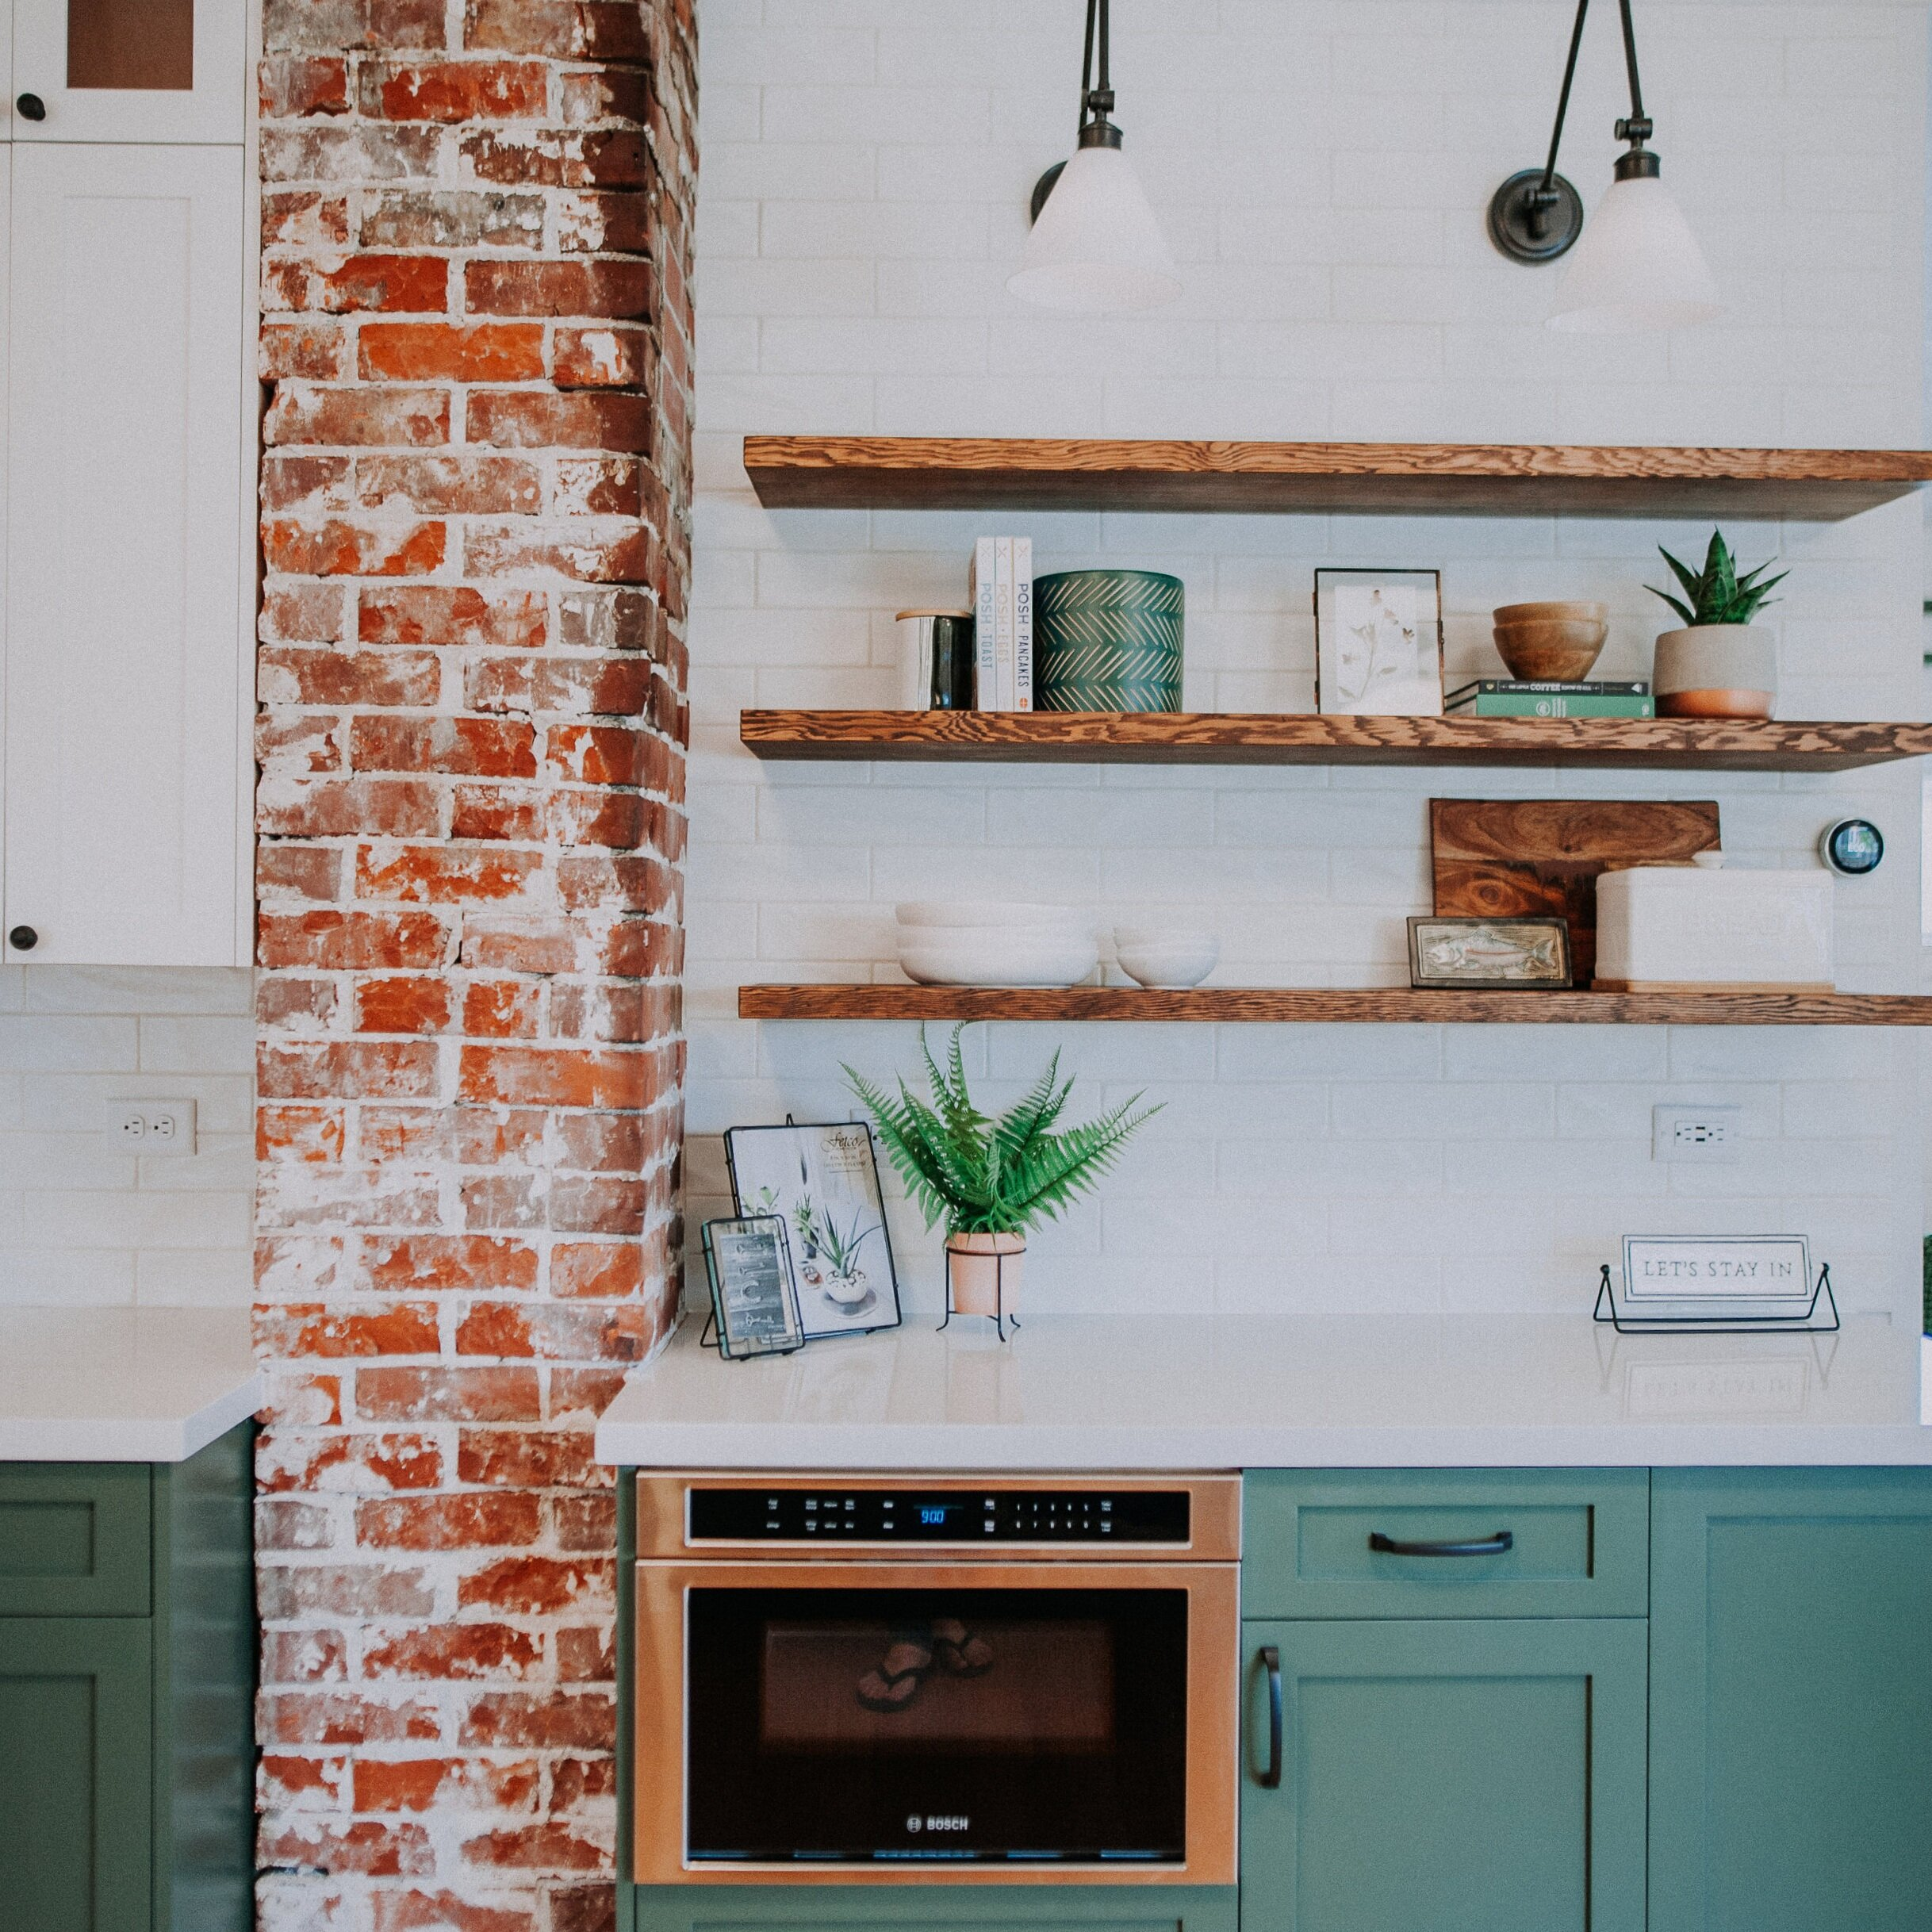 Full or Partial Remodel - Your space needs some (ahem) significant lovin'. Kitchen remodel, bathroom renovation, additions, etc. Offerings include total project management, floor plans, 3-d renderings, sourcing, purchasing, installation and accessorizing.